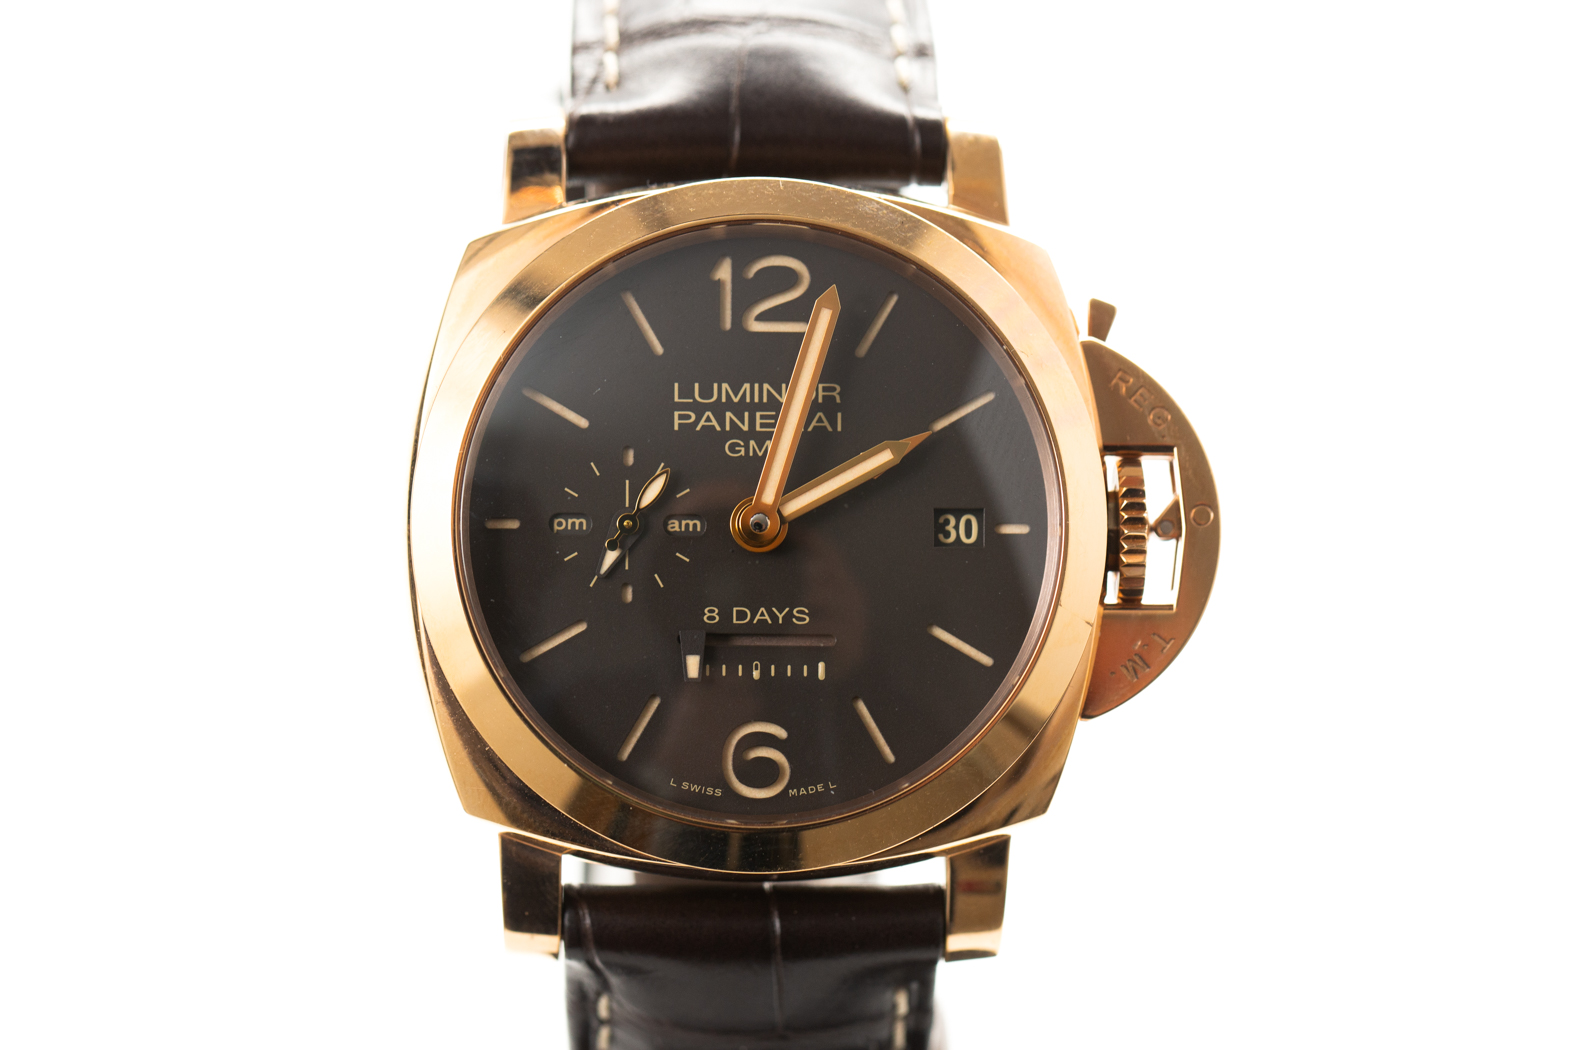 panerai - Luminor gmt